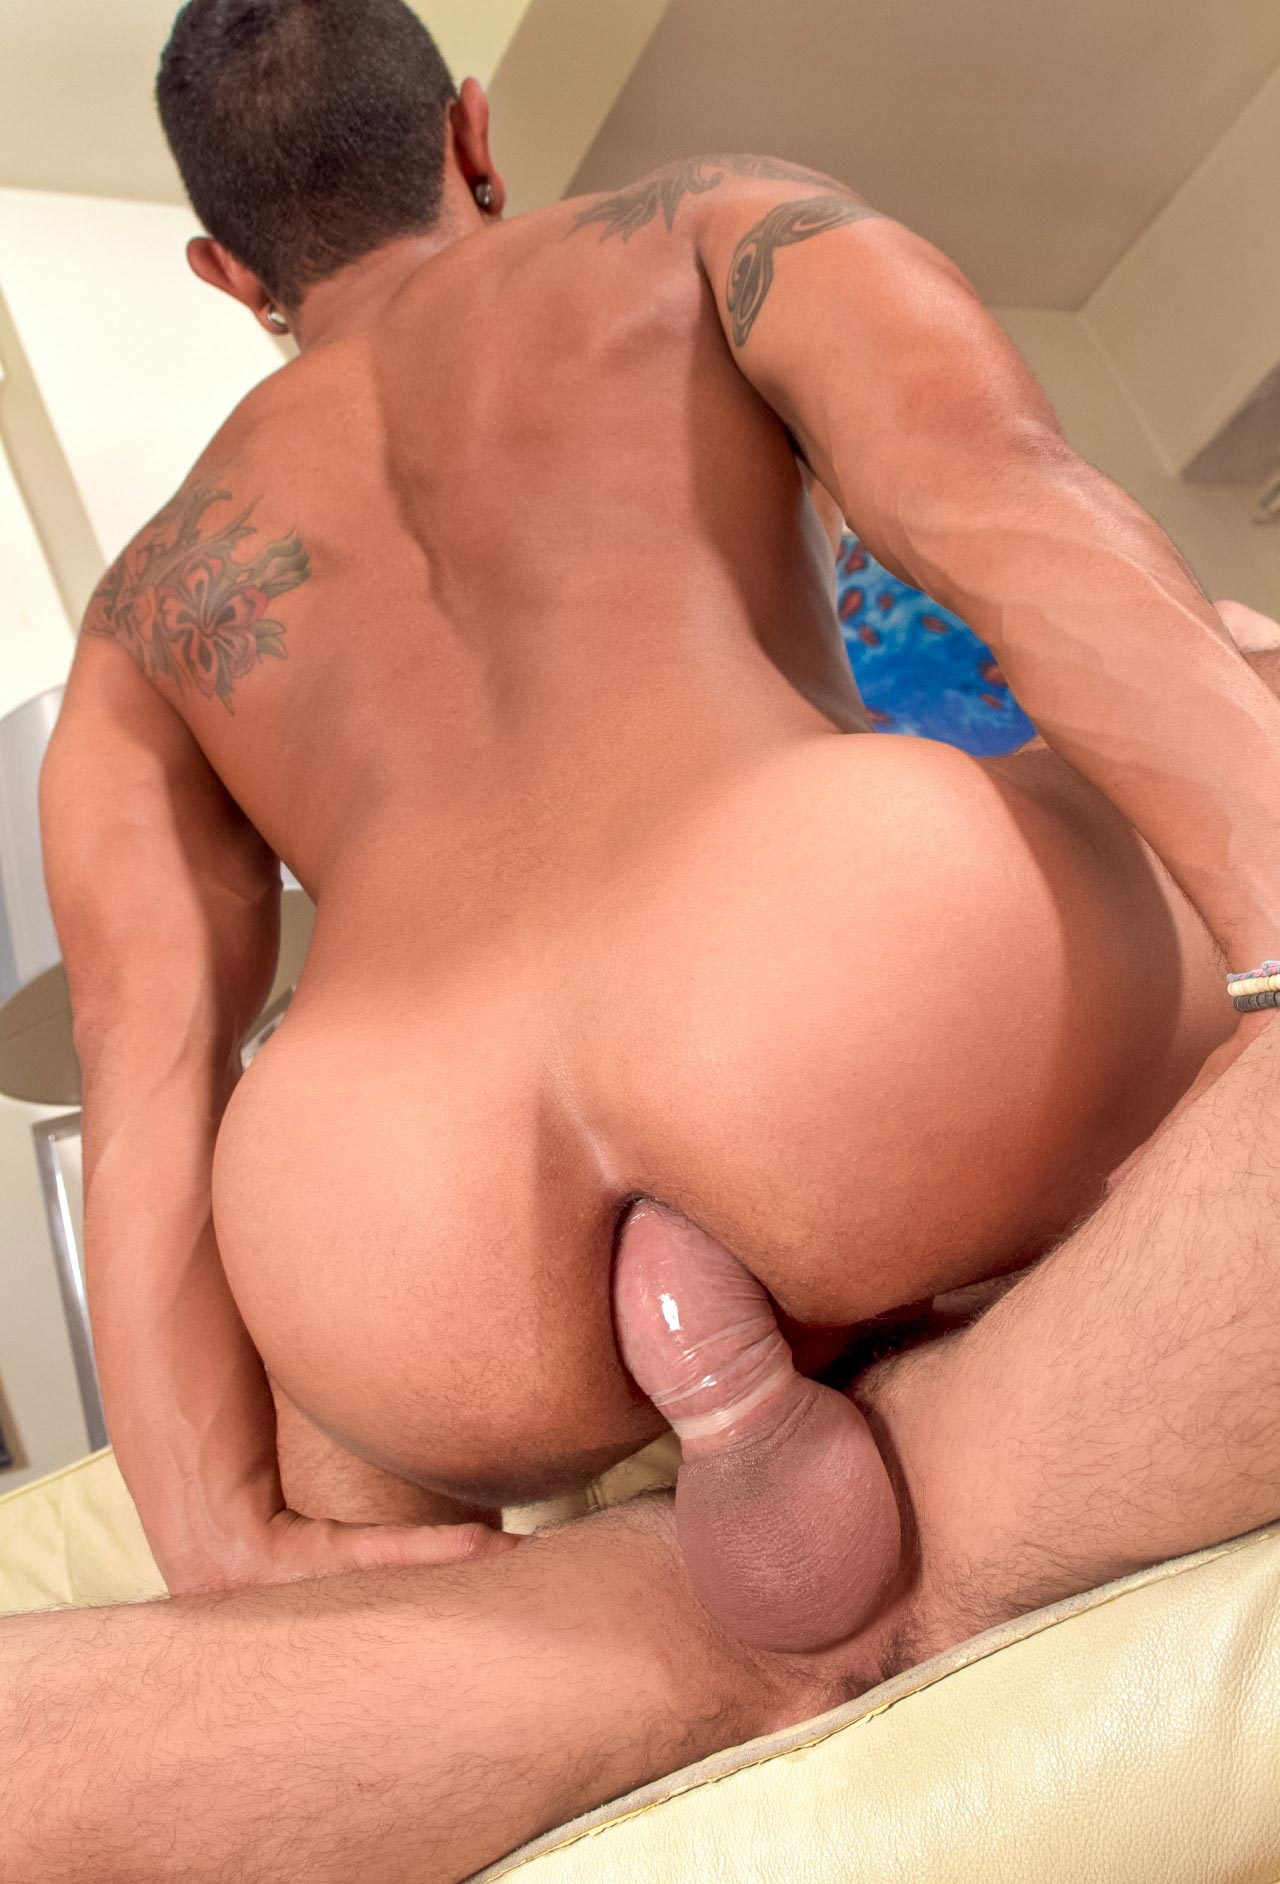 porno gay hd escorts iquique